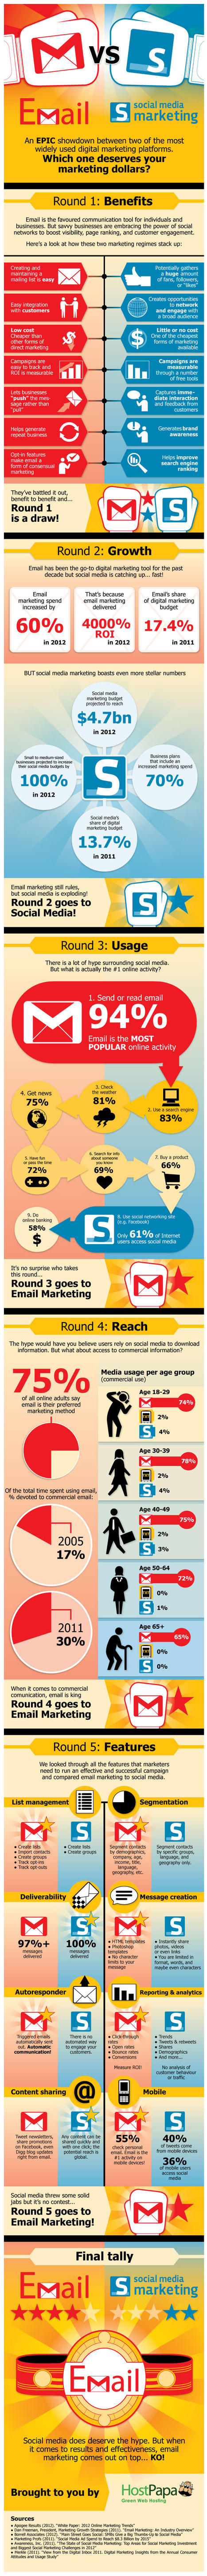 Email Marketing Knocks Out Social Media in 5 Rounds - HostPapa | #TheMarketingTechAlert | email | Scoop.it